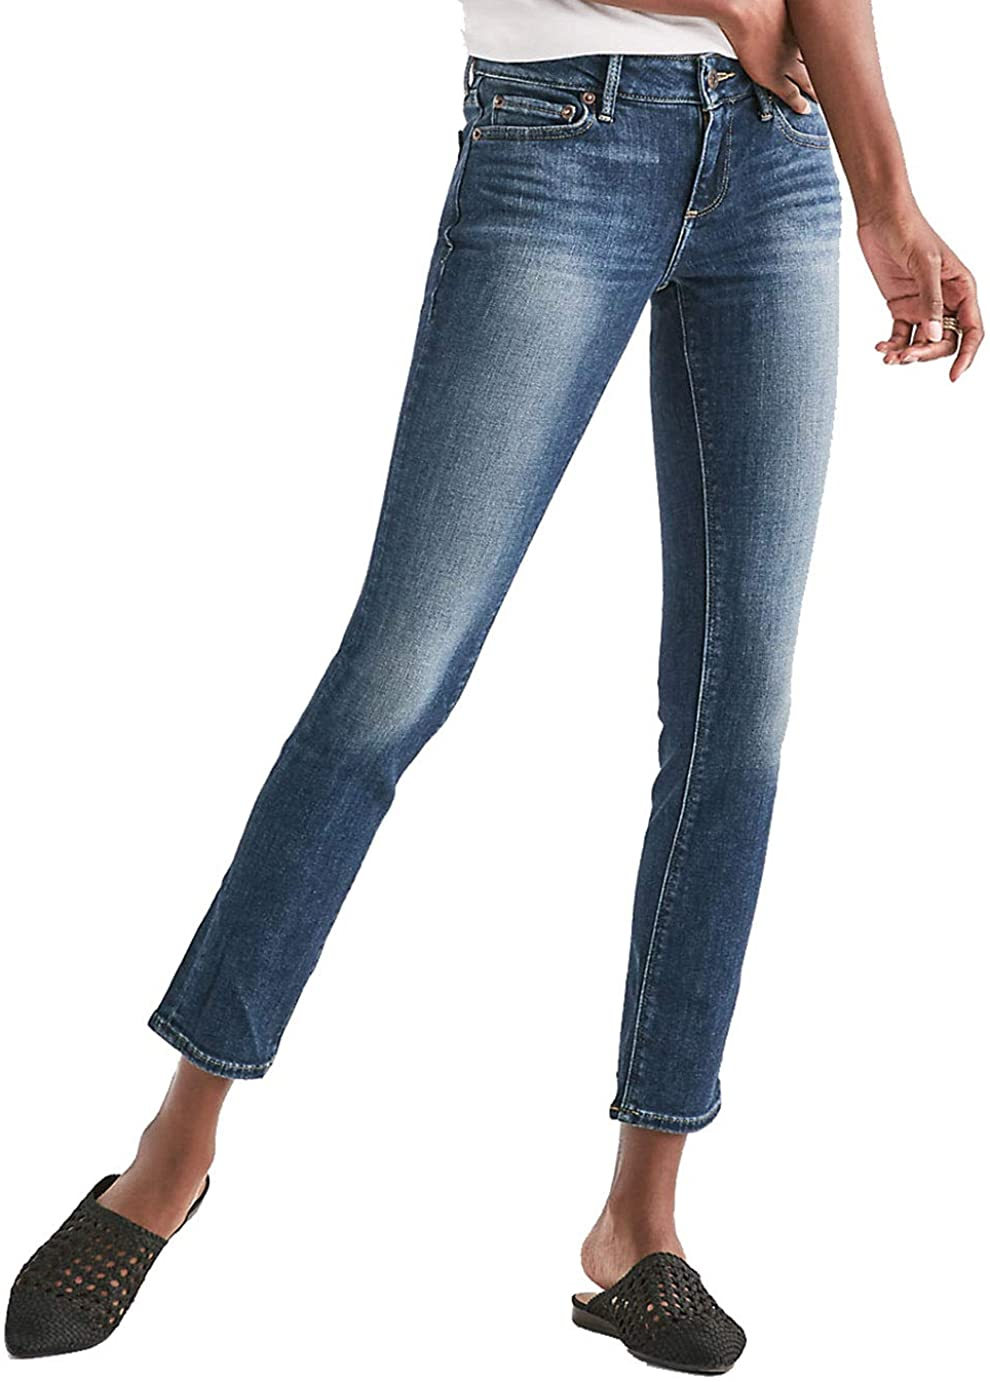 Lucky Brand Women's Lolita Mid Rise Curvy Fit Skinny Jeans Lake Bridgeport Blue Wash